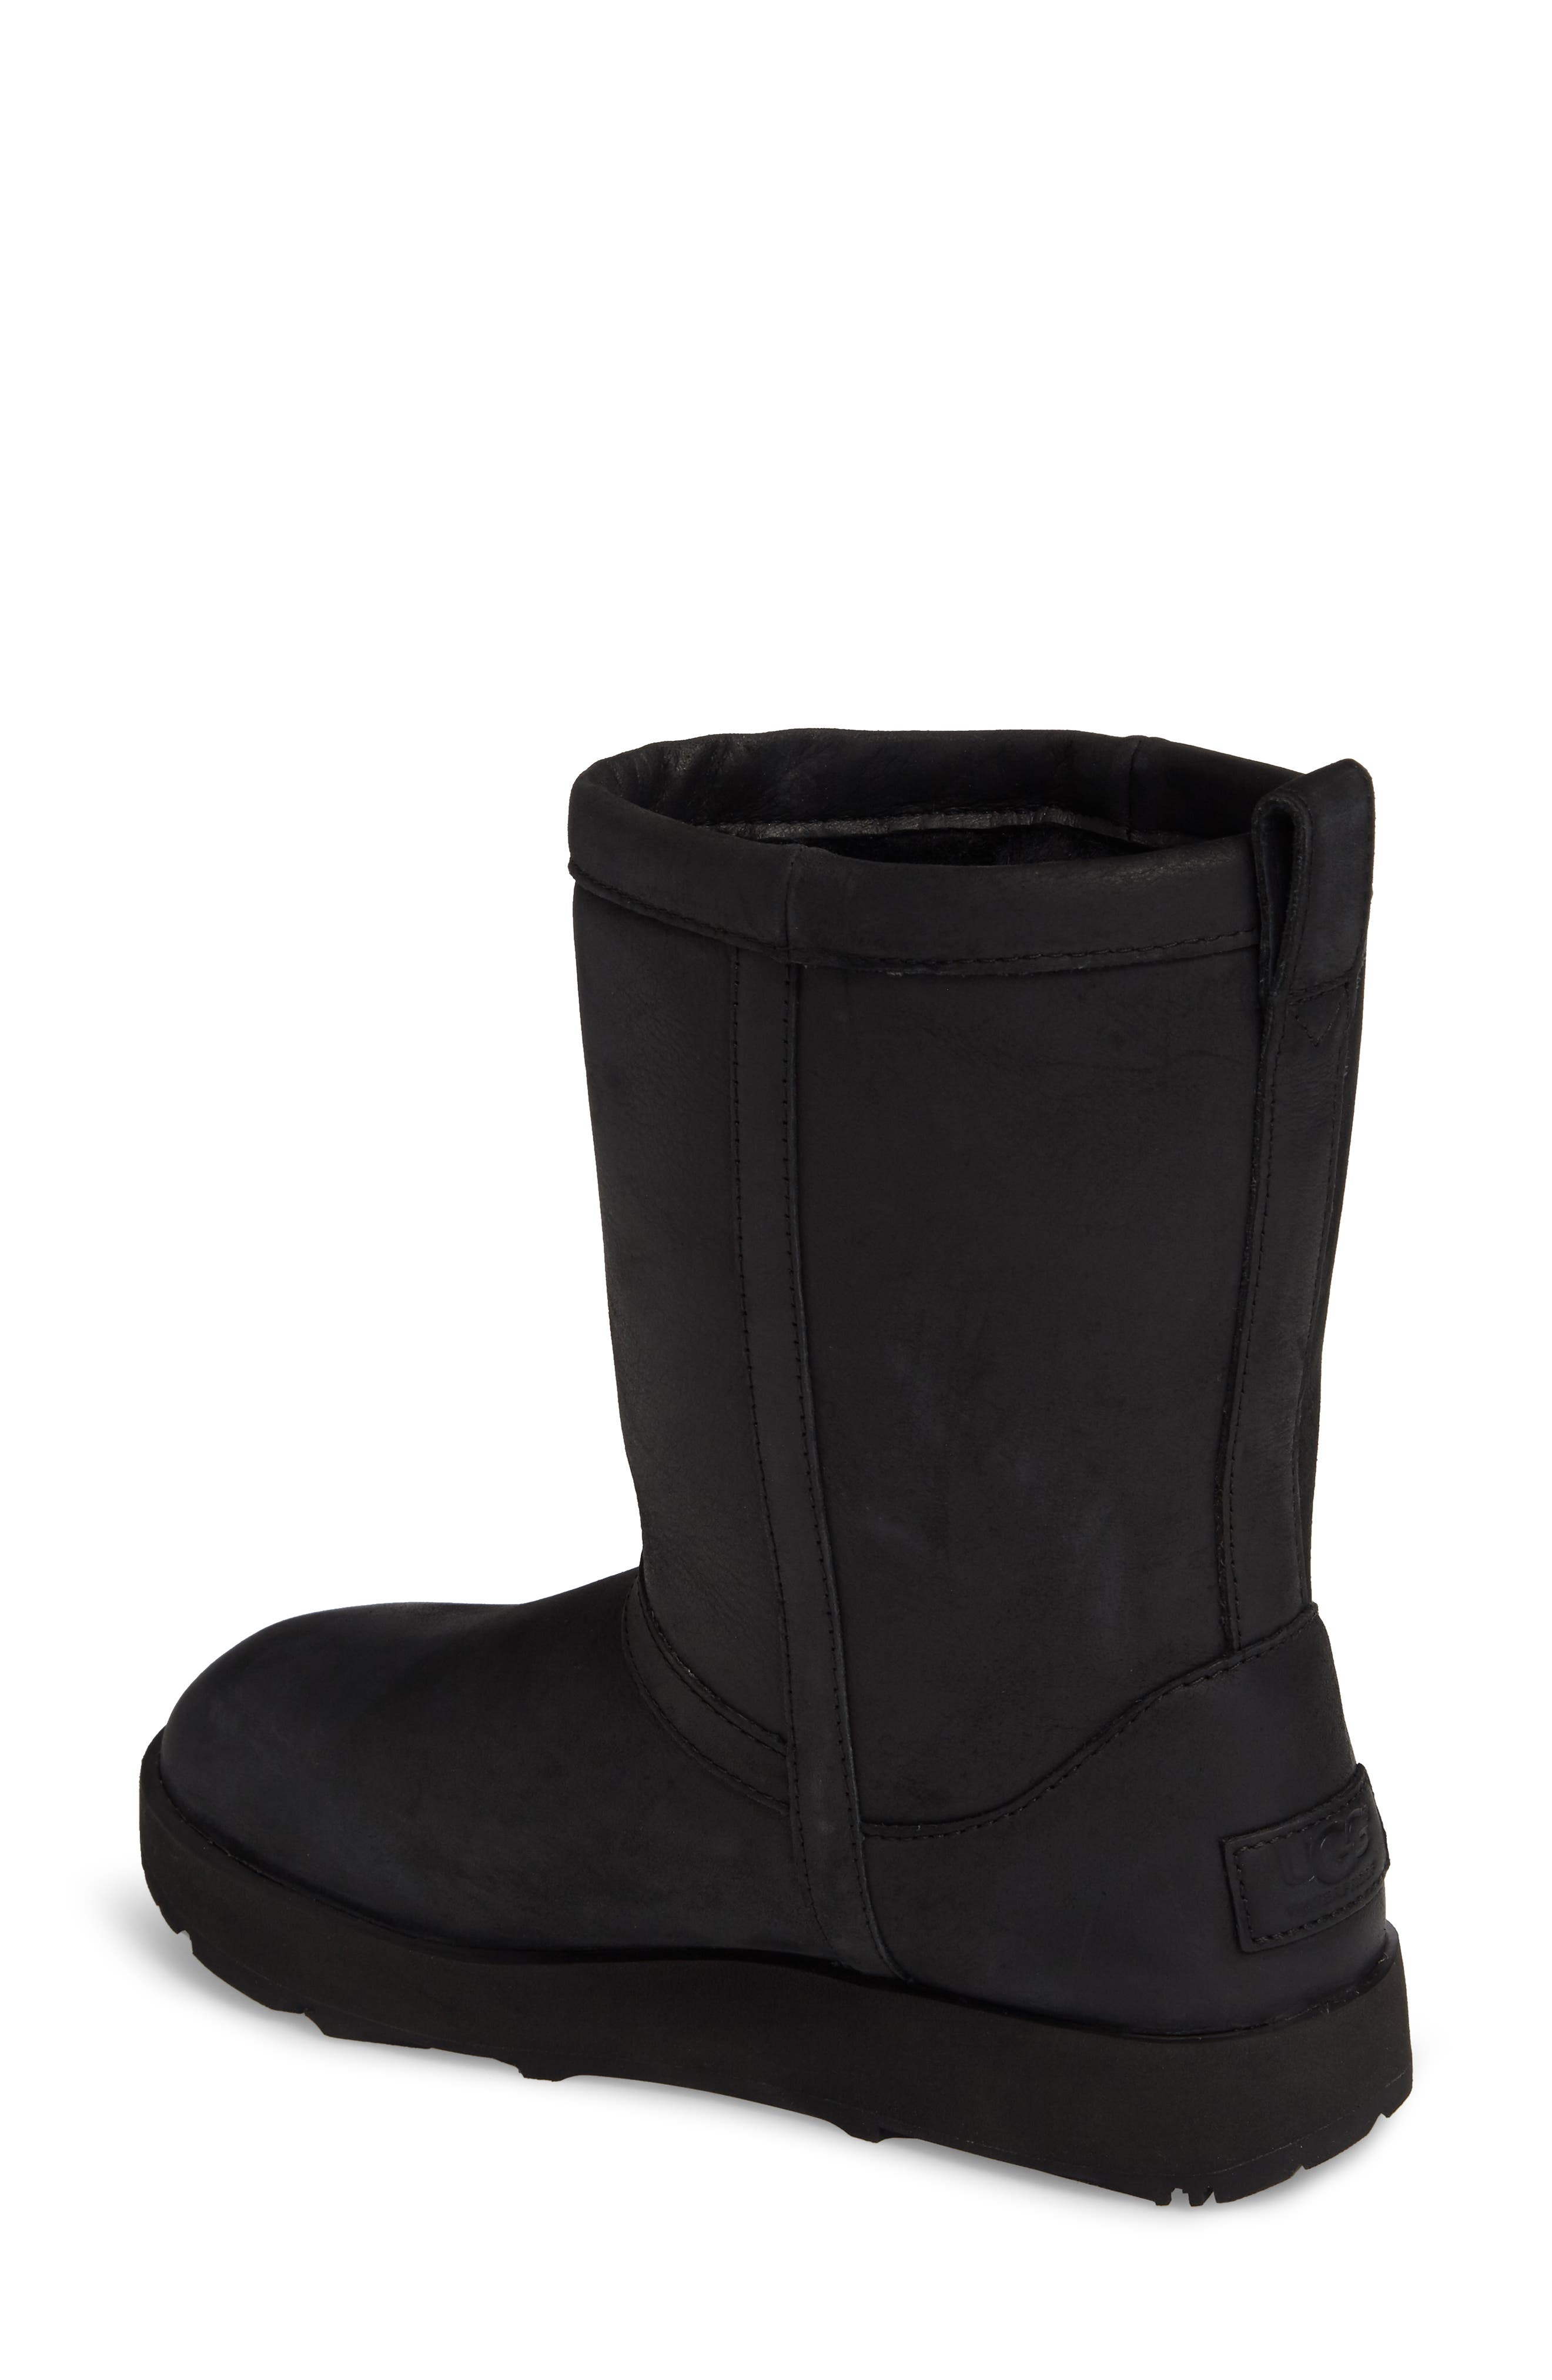 Classic Genuine Shearling Lined Short Waterproof Boot,                             Alternate thumbnail 2, color,                             BLACK LEATHER